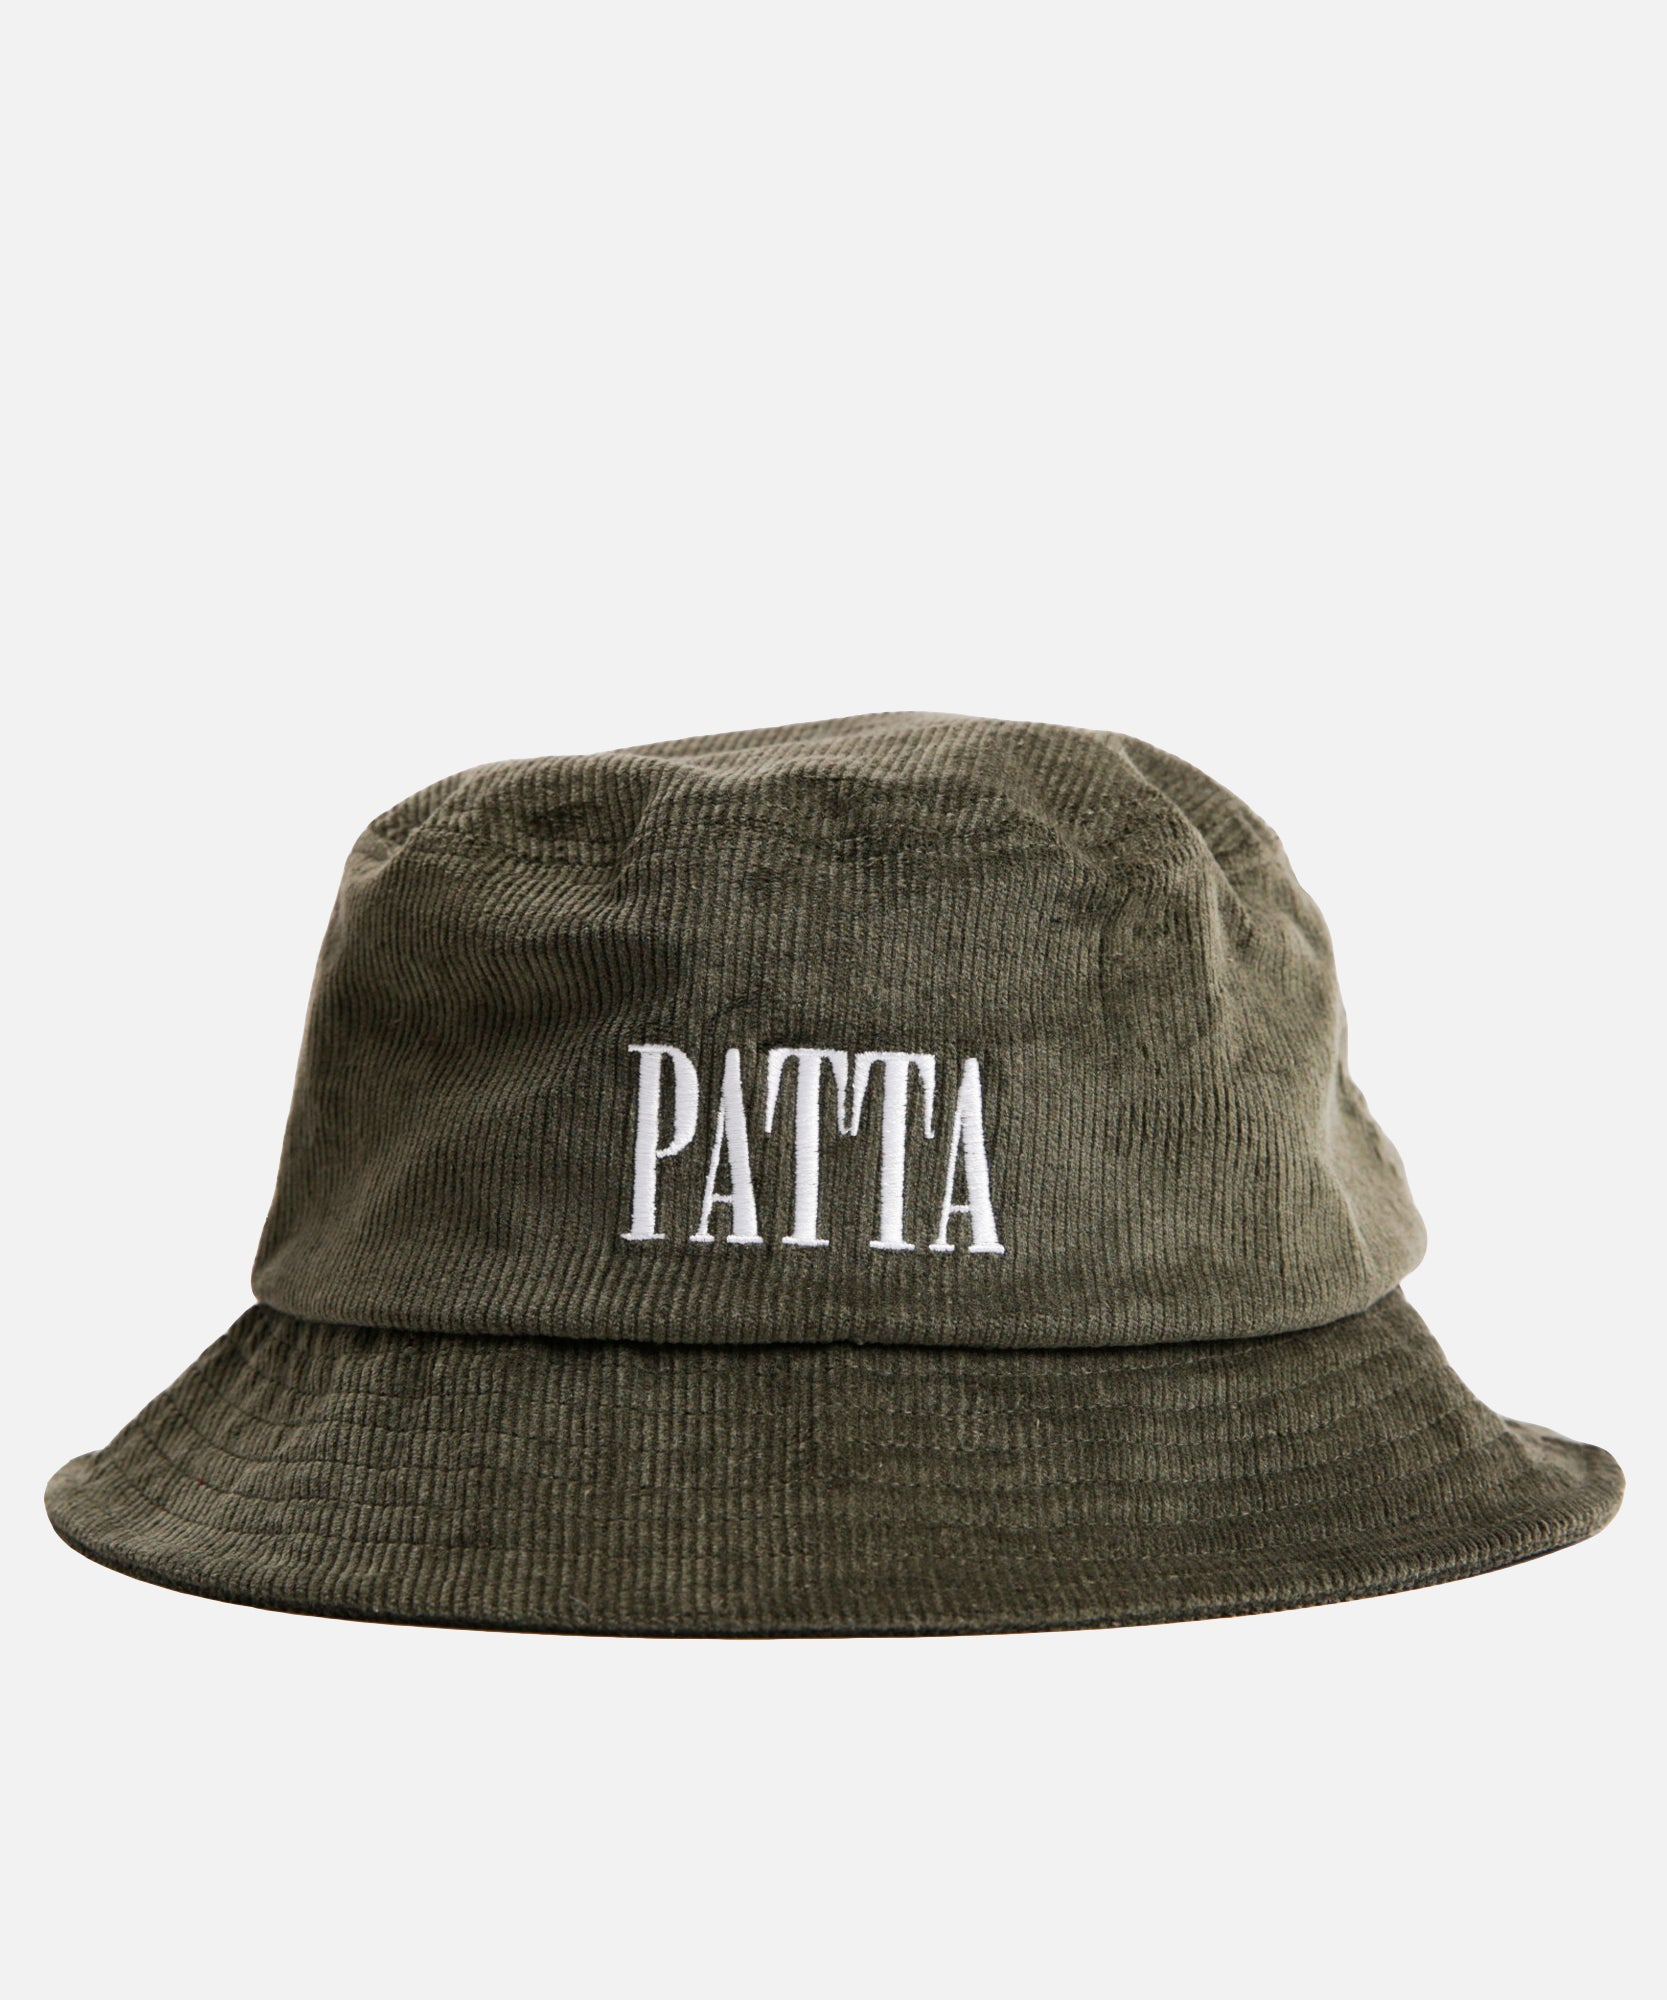 Patta Corduroy Bucket Hat (Rifle Green)